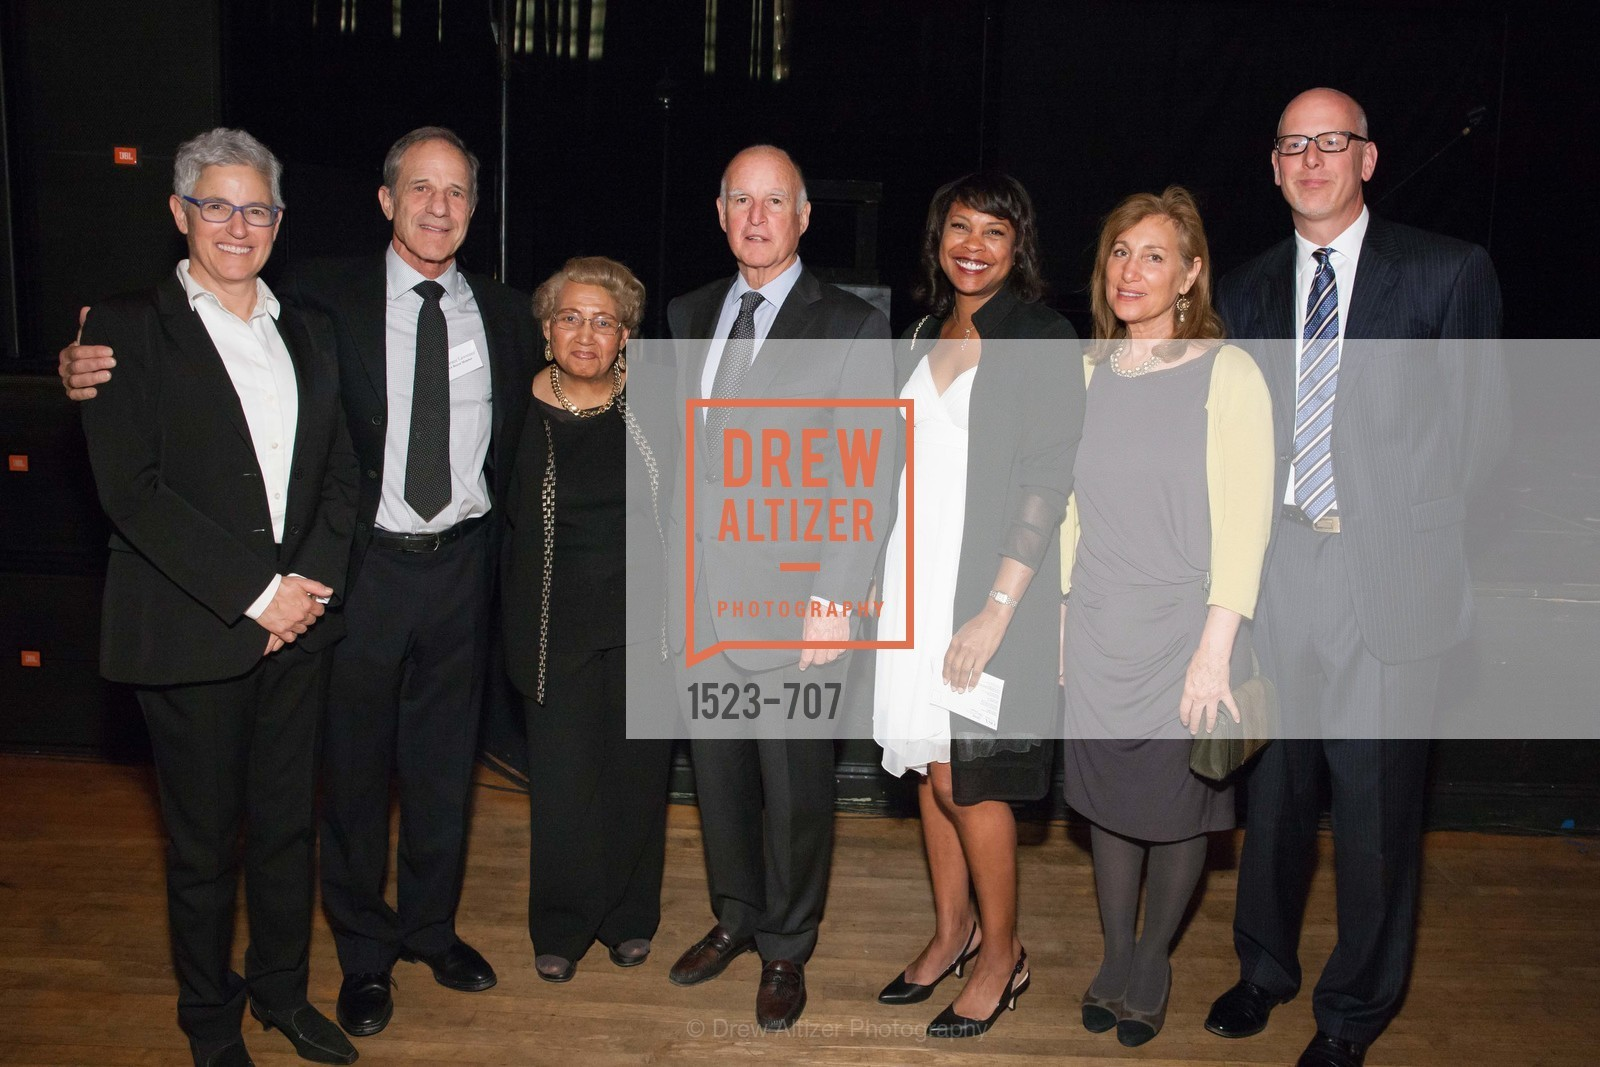 Carol Isen, Dr. Bruce Lawrence, Estella Harrison. Gov. Jerry Brown, April Hines, Randi Protobapis, Mike Barr, OAKLAND SCHOOL FOR THE ARTS Gala 2015 with Governor Jerry Brown, US, May 8th, 2015,Drew Altizer, Drew Altizer Photography, full-service agency, private events, San Francisco photographer, photographer california